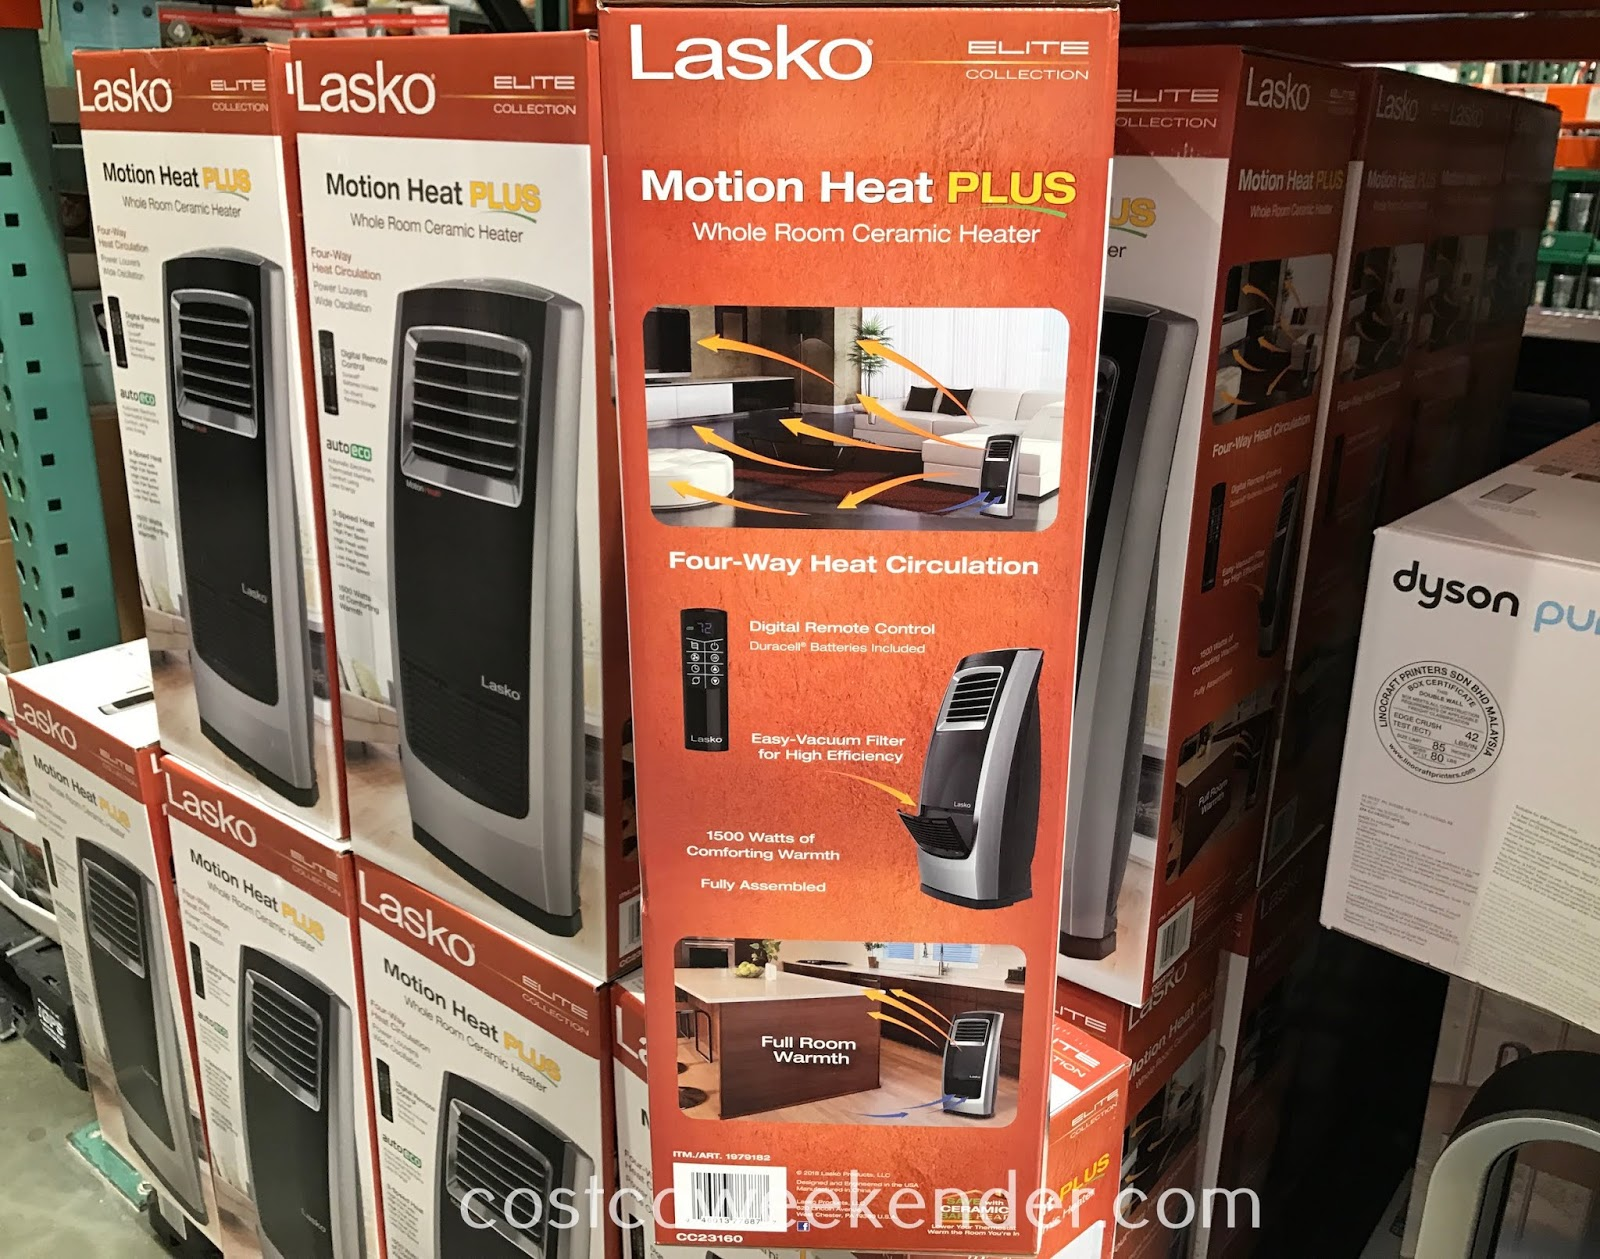 Costco 19179182 - Don't go hypothermic with the Lasko Whole Room Ceramic Heater